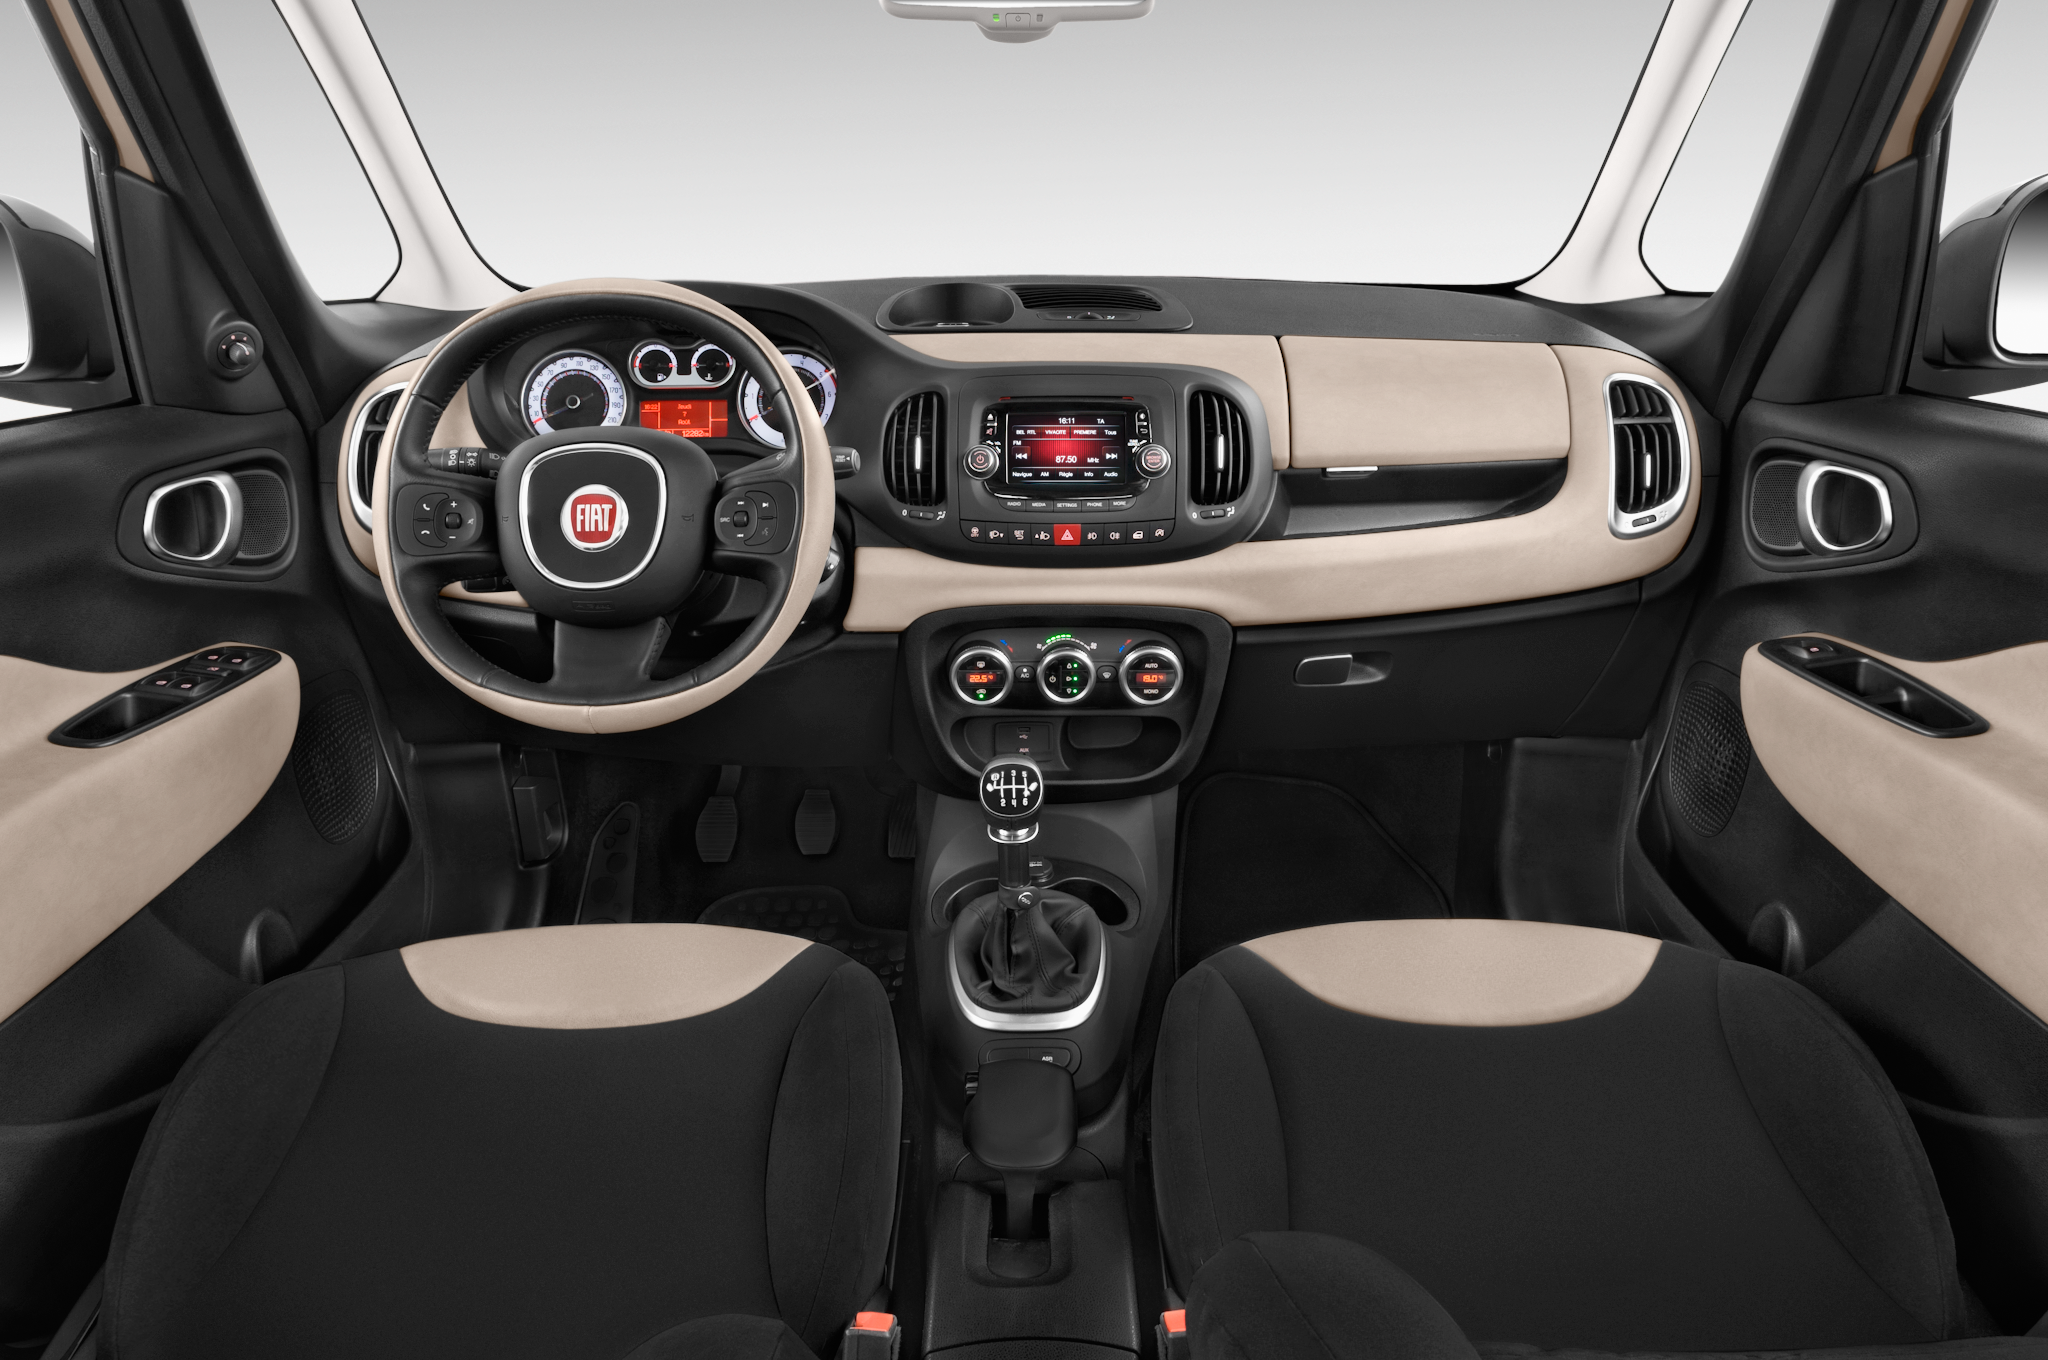 2015 Fiat 500L Adds Six-Speed Automatic, New Colors